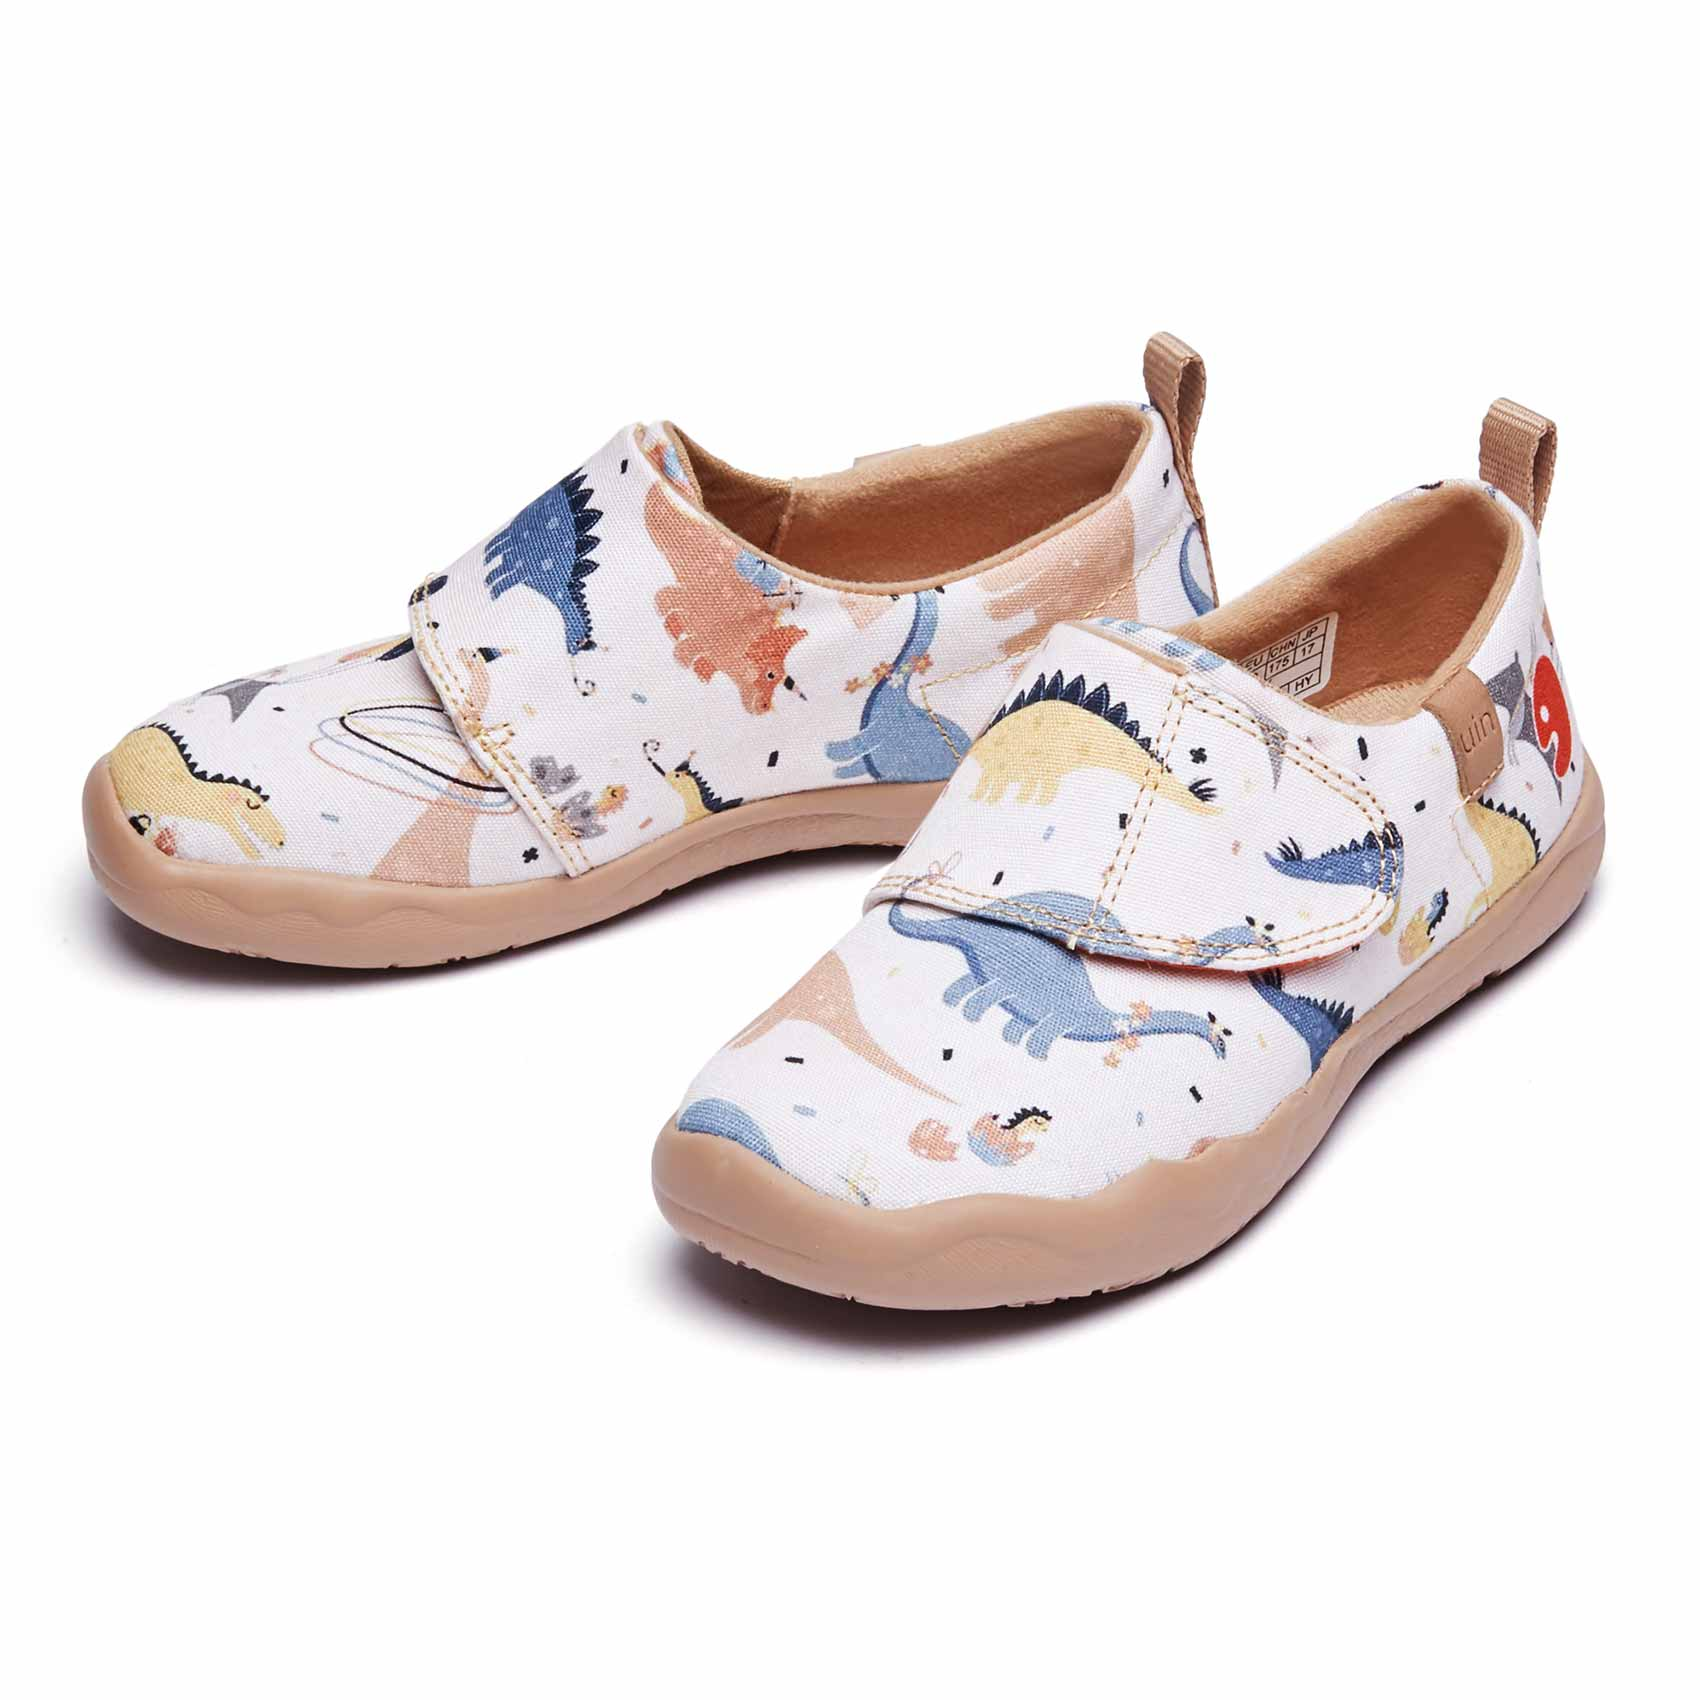 UIN Kids' Fashion Sneaker Colorful Painted Art Funny Walking Casual Travel Shoes enlarge